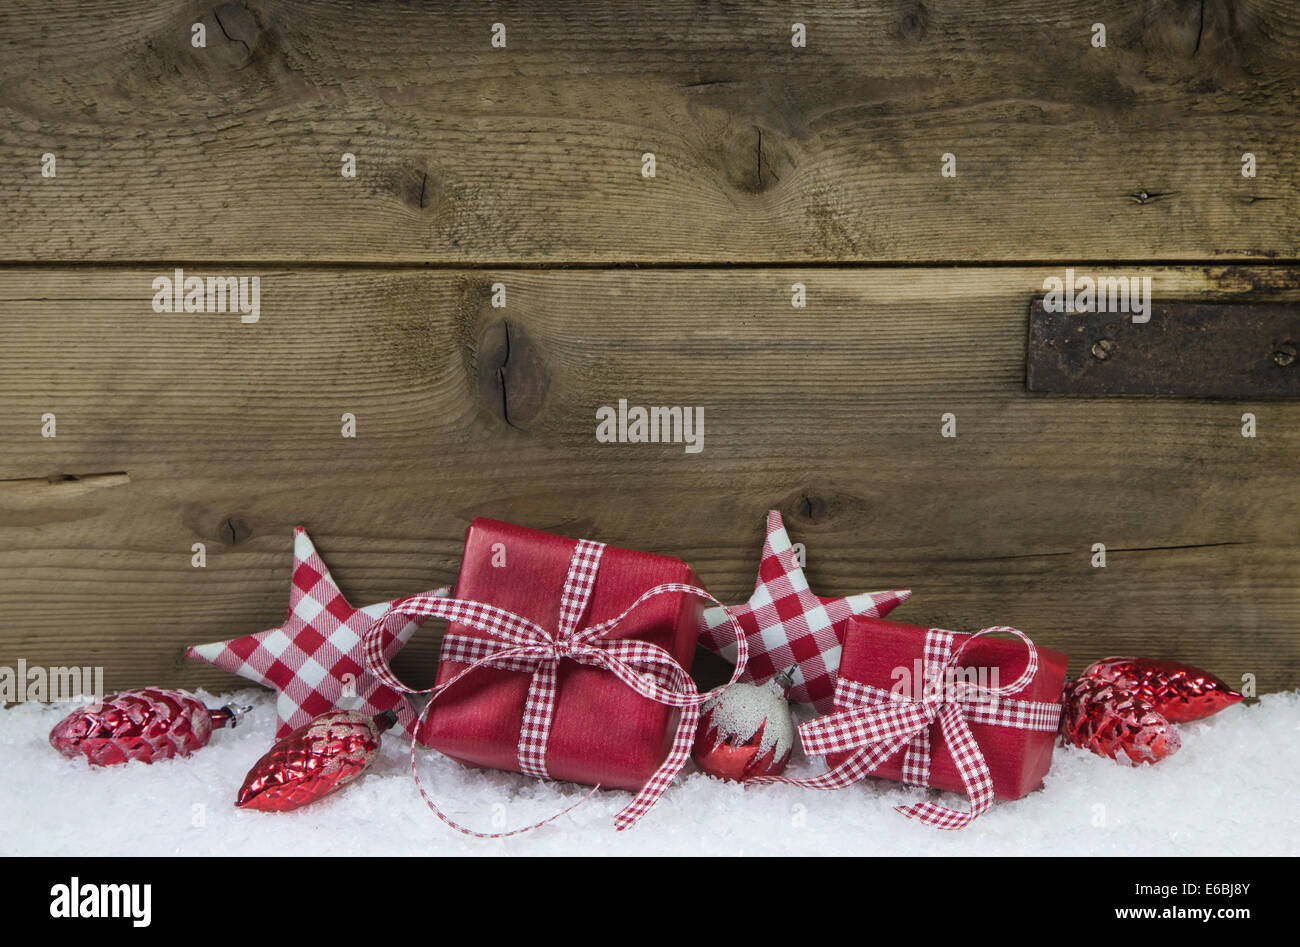 Christmas In Color.Presents For Christmas In Red White Checkered Color On